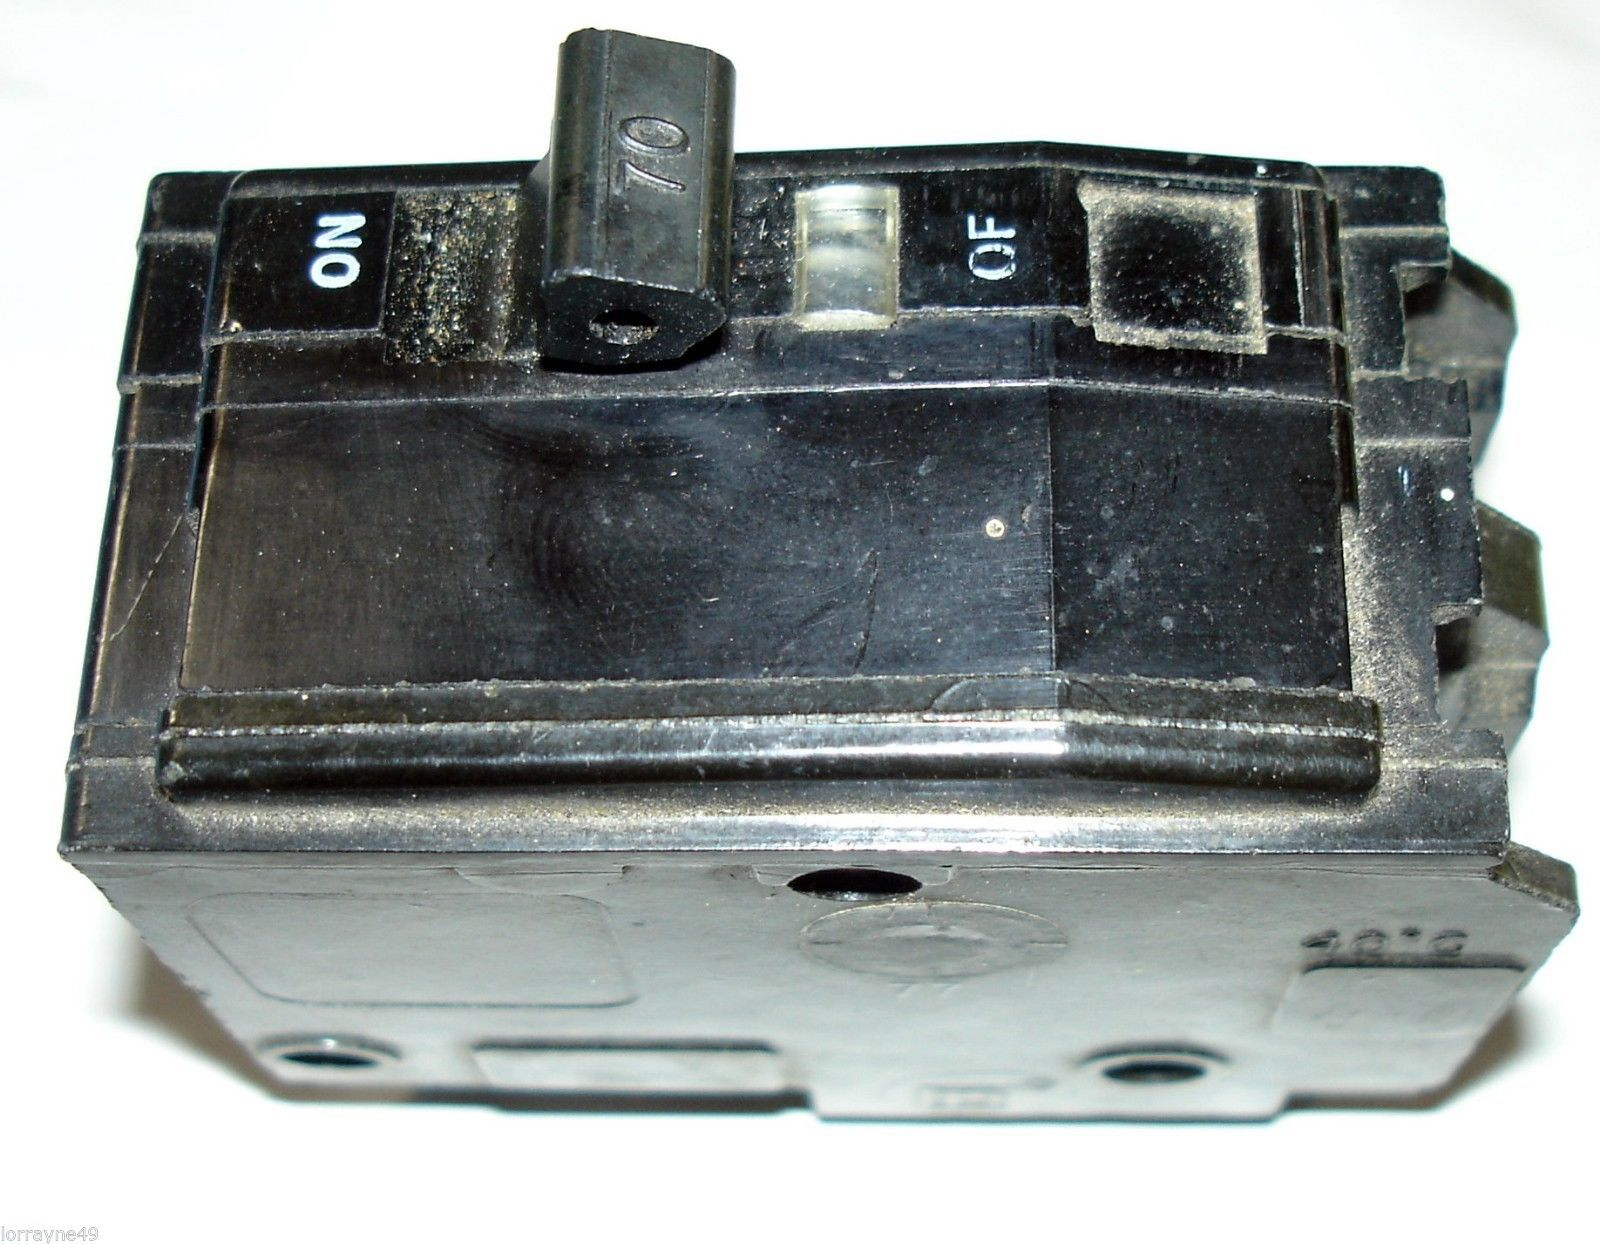 Square D Circuit Breaker 70a Type Qo Qo270 And 50 Similar Items About Siemens Murray Mp3030 30 Amp Single Pole 2 Used